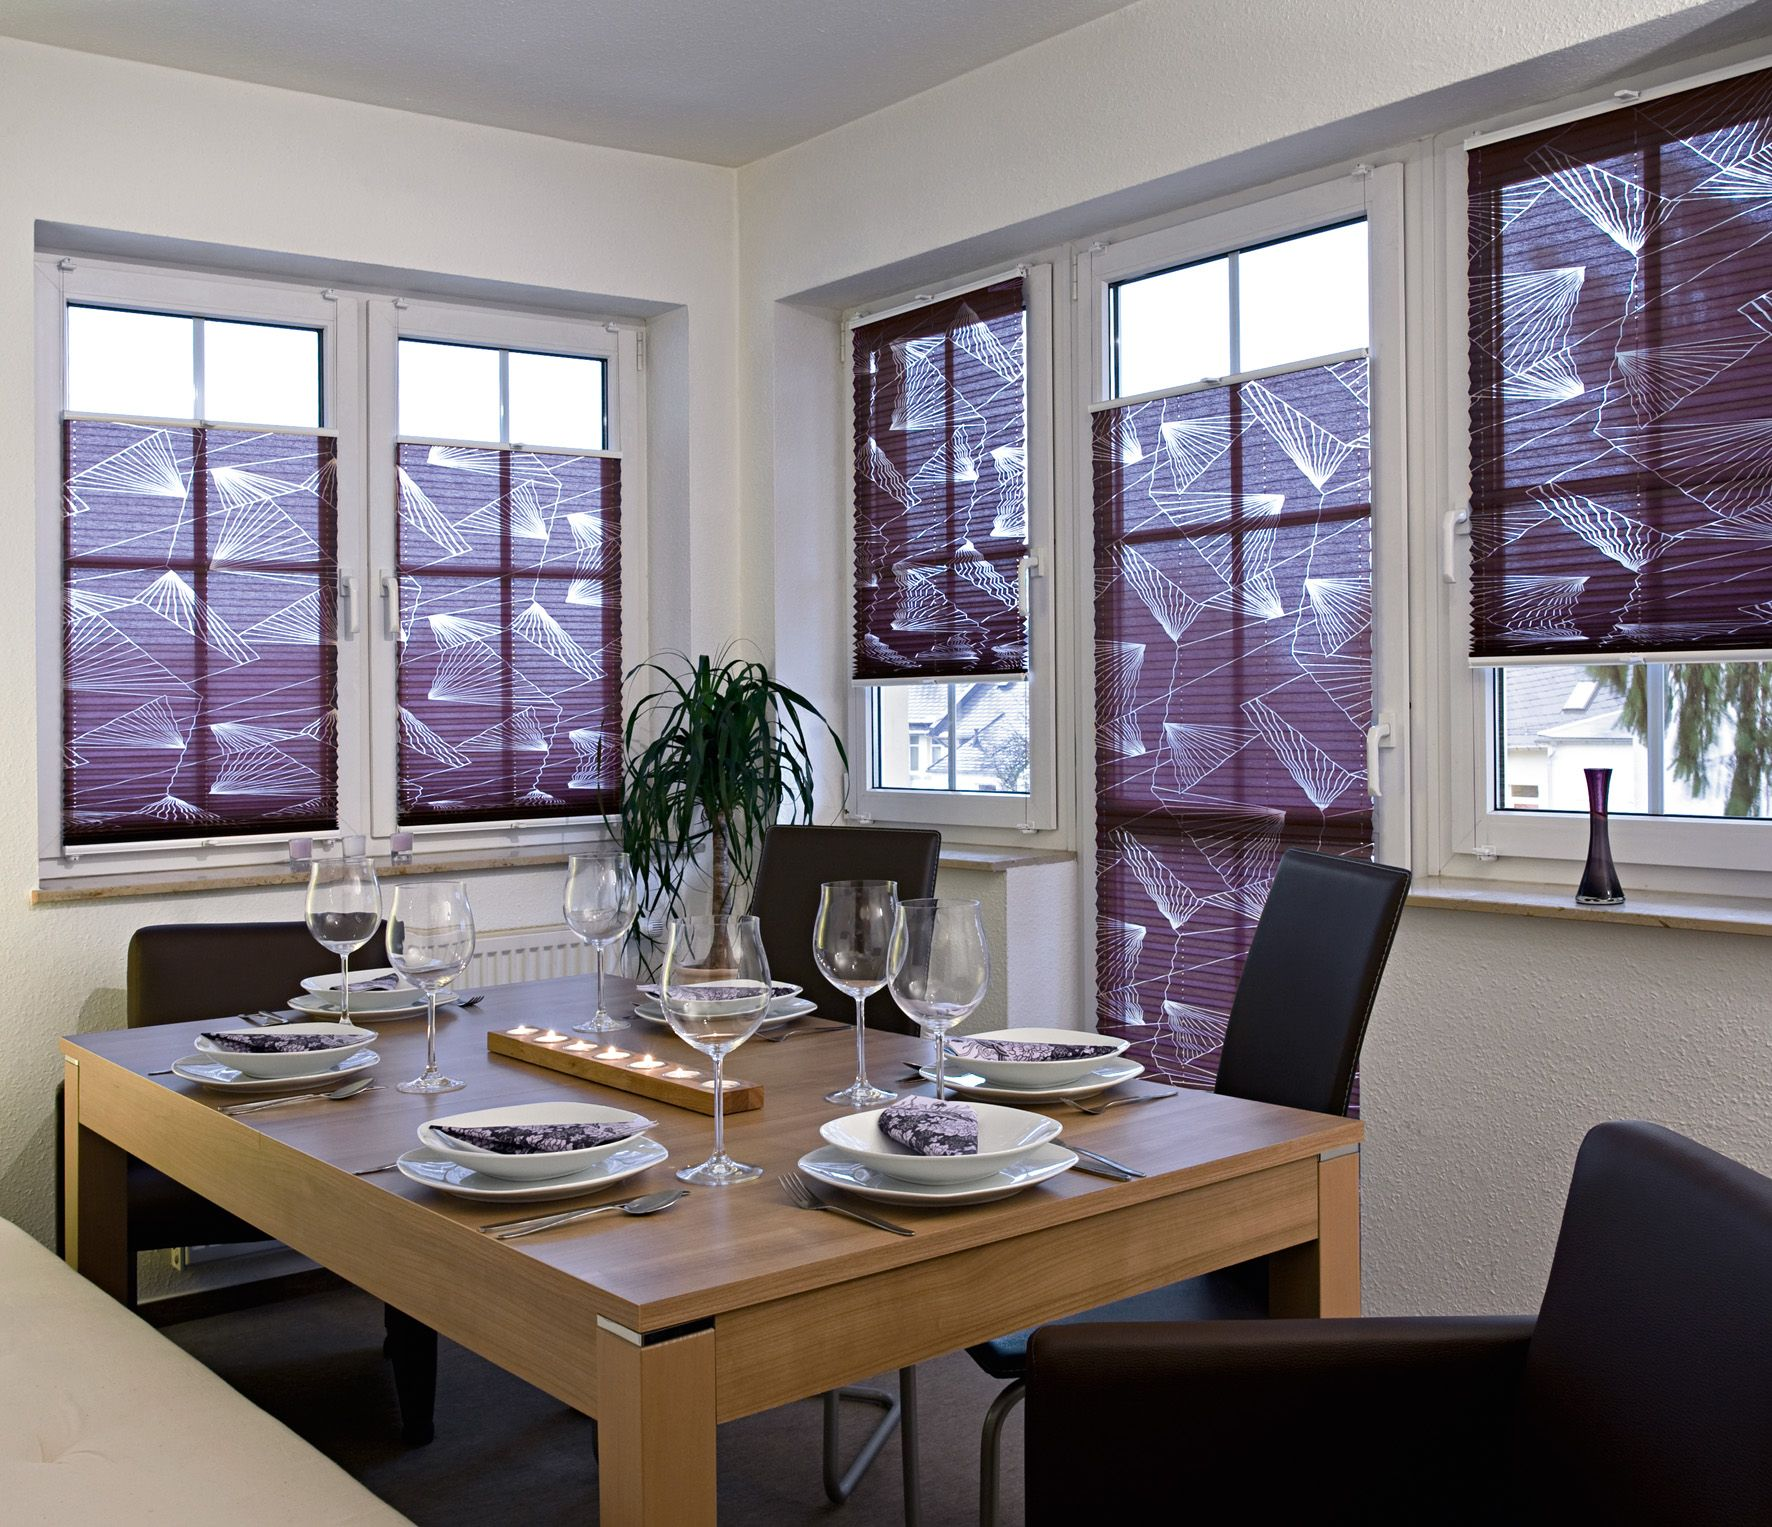 Custom pleated blinds from fenstermann llc made in germany